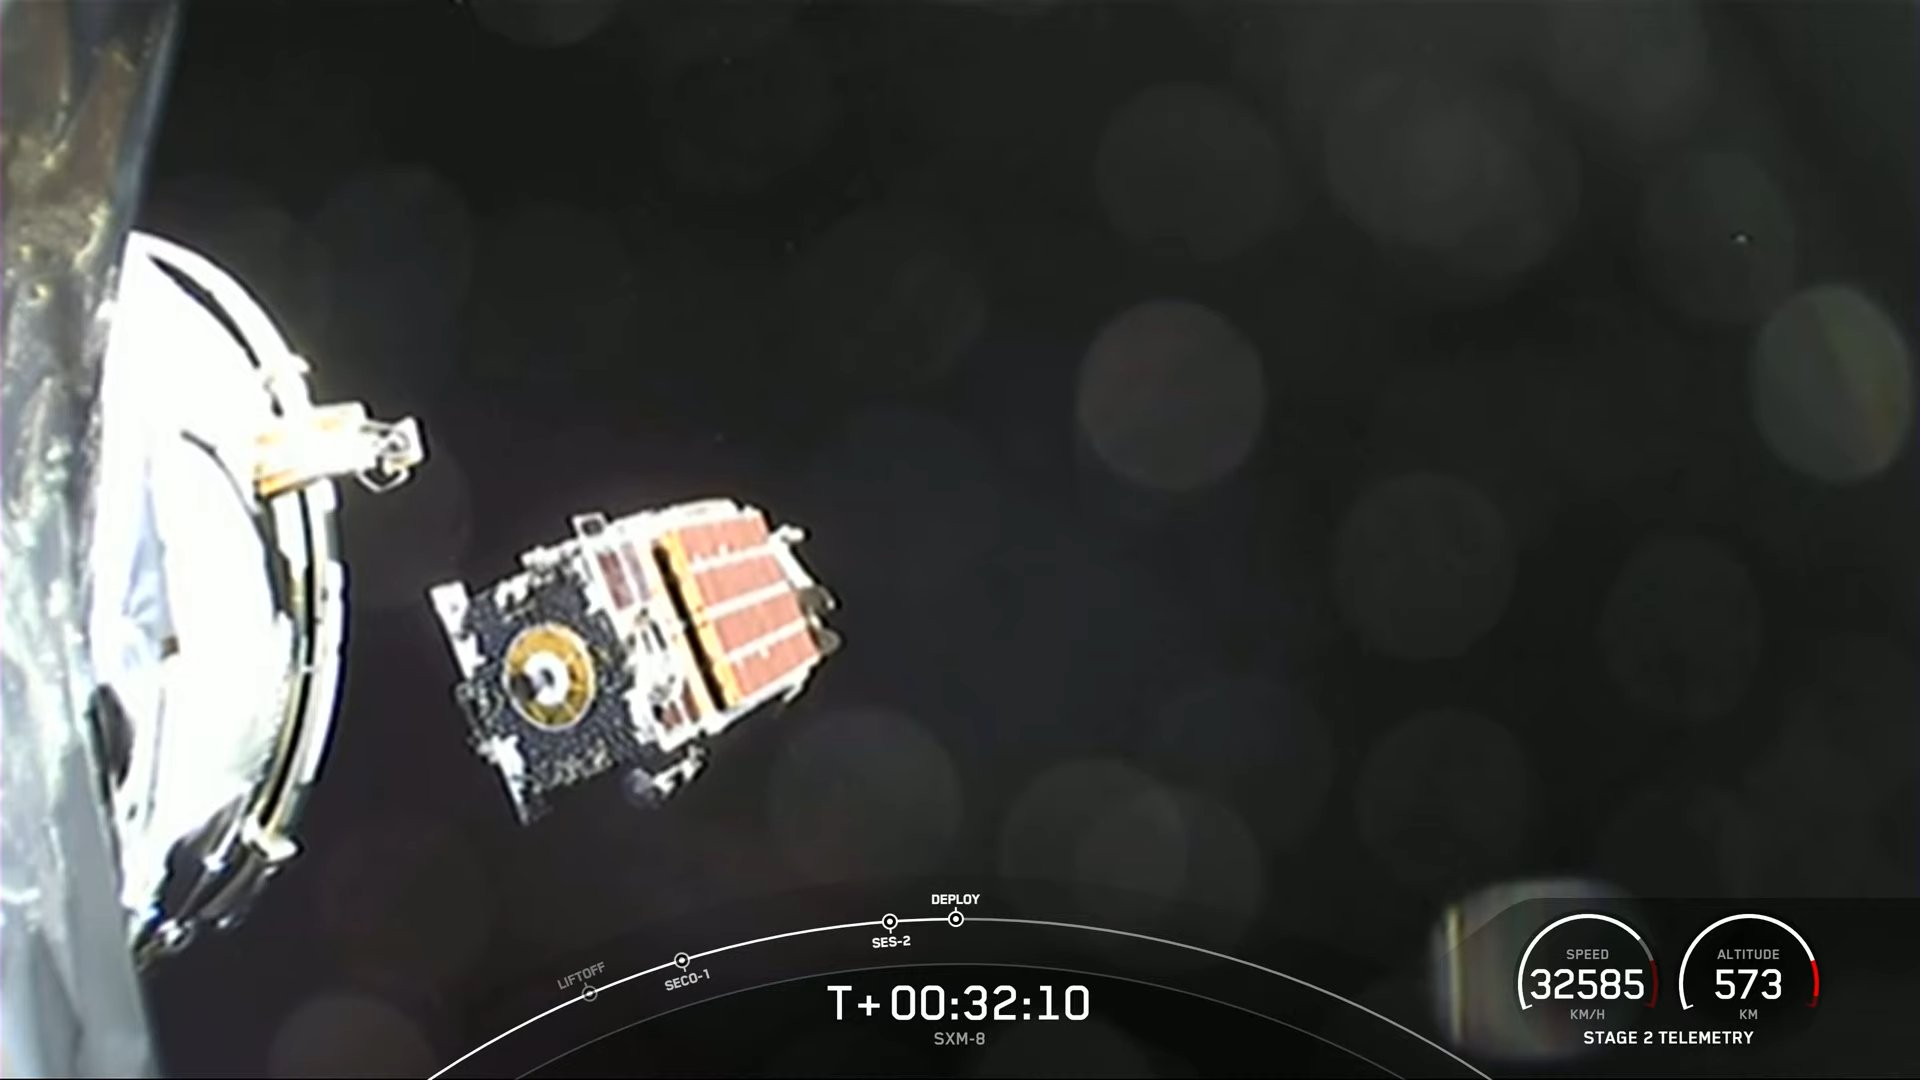 The Sirius XM SXM-8 satellite has been put into orbit after its successful launch by SpaceX on June 6, 2021.